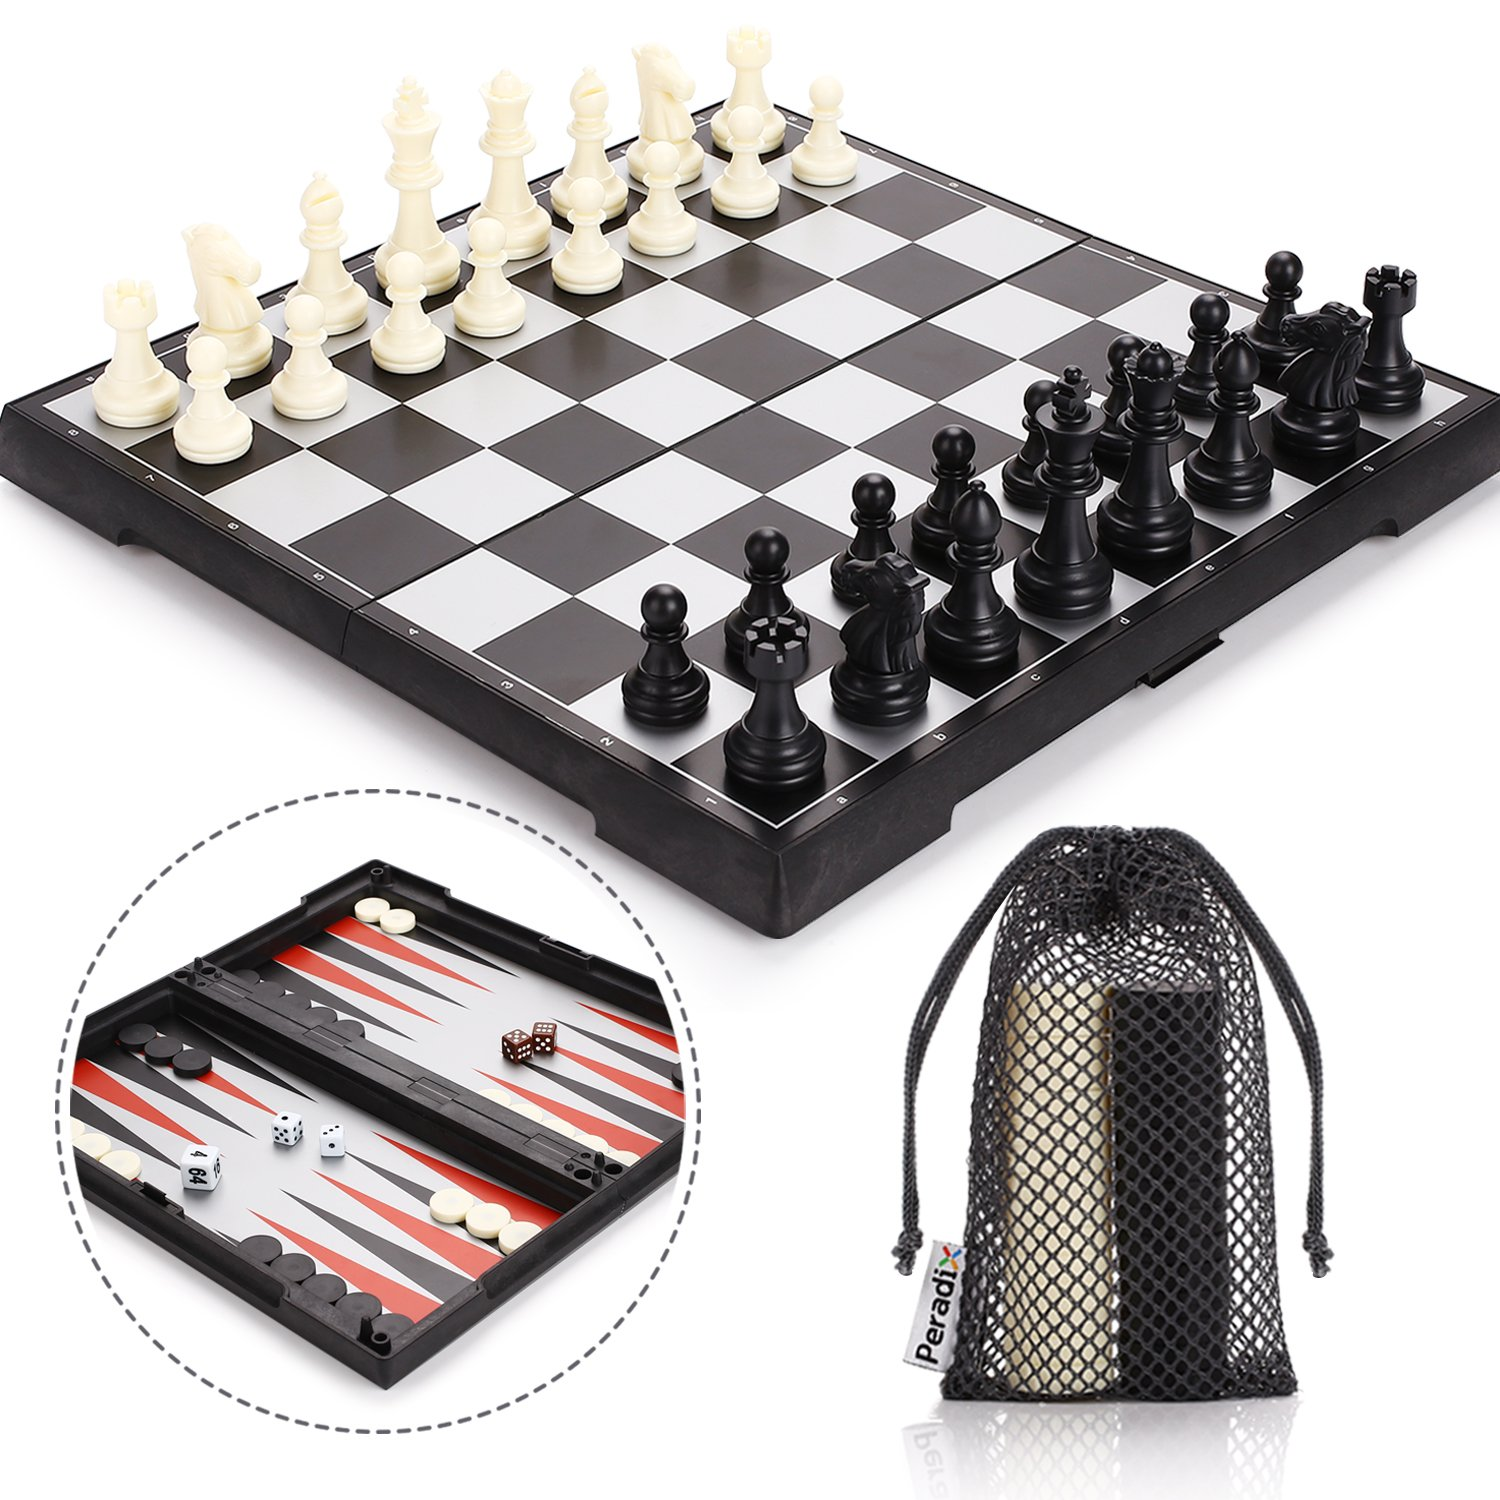 Peradix Magnetic Folding Chess Set, 3 in 1 with 3 Storage Bags, Staunton Magnet Chess Checkers Backgammon Travel Chess Board Game, Portable Travel Size, Educational Learning Toys for Teens and Adults by Peradix